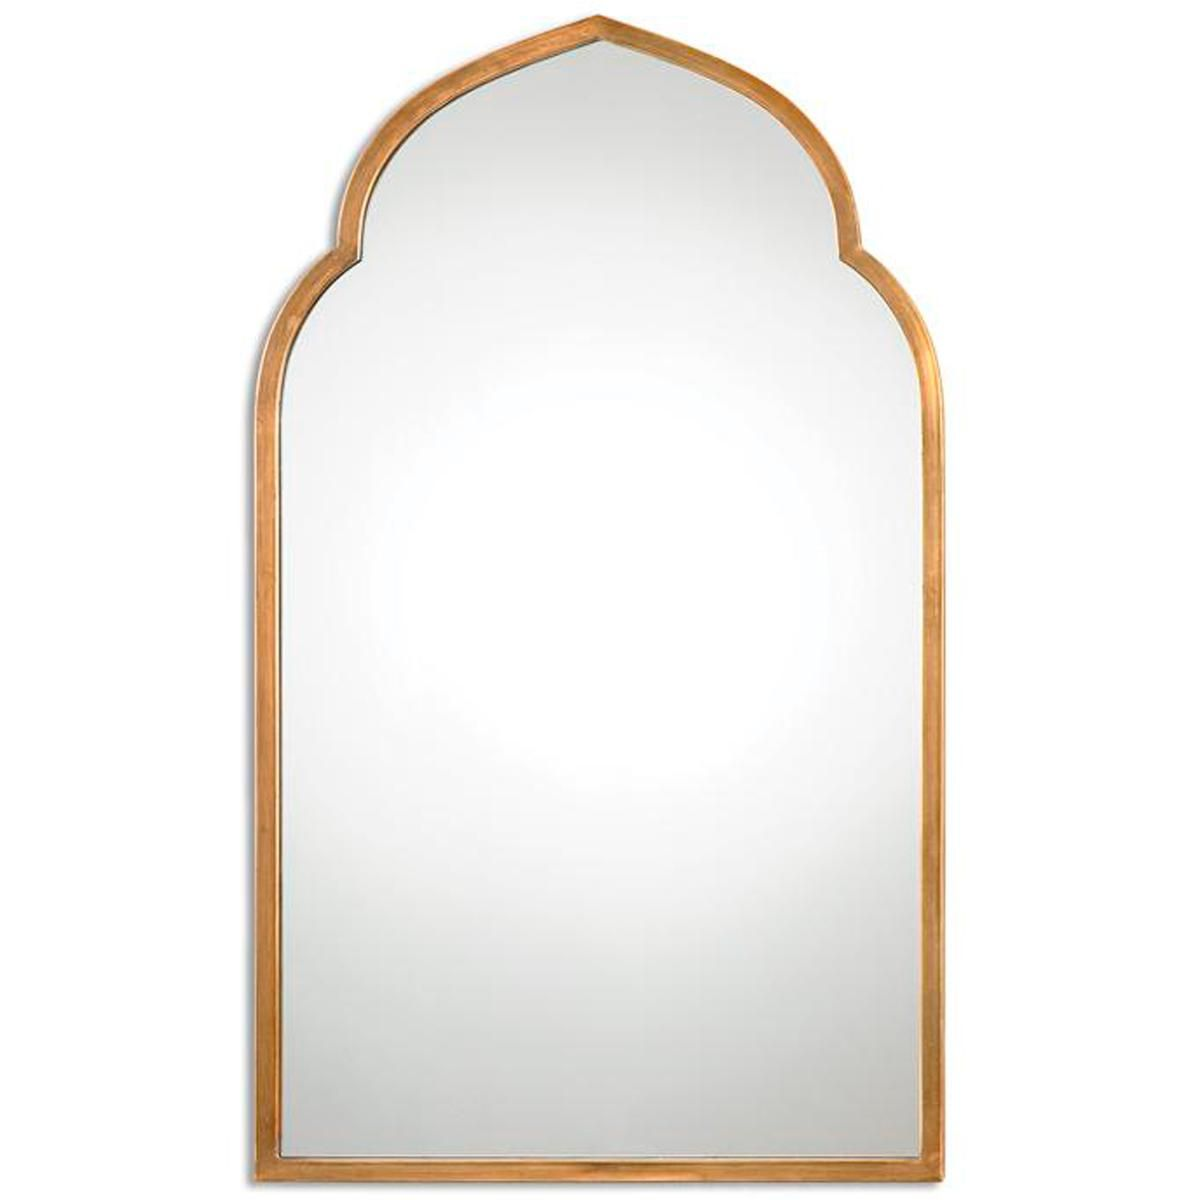 Golden arabesque mirror ednam pinterest arabesque mirror uttermost kenitra gold arch decorative wall mirror 16902815 overstock great deals on uttermost mirrors mobile amipublicfo Choice Image